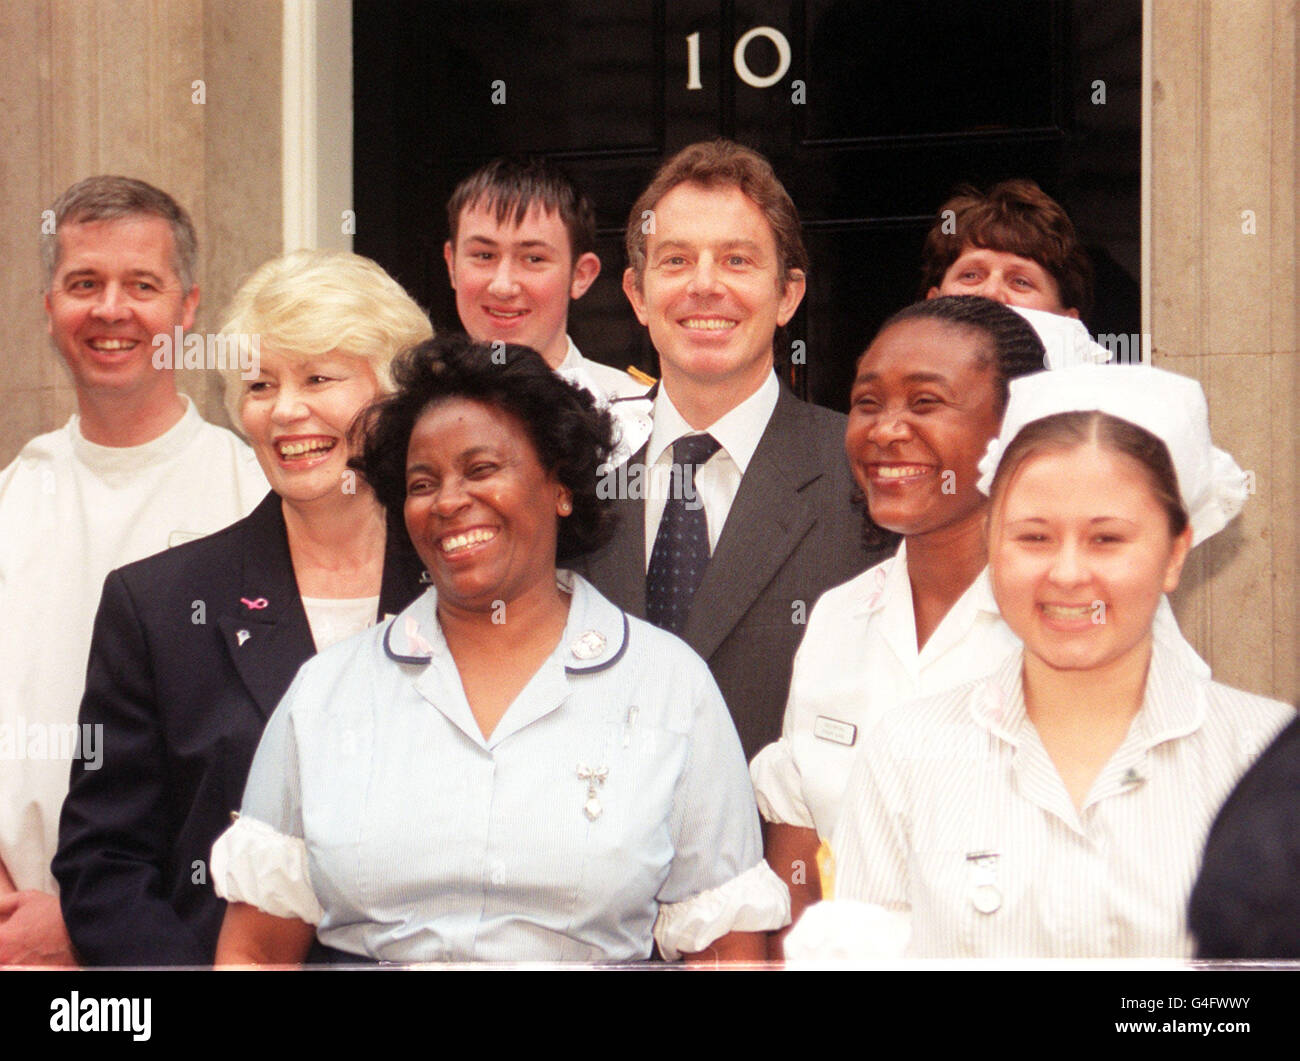 Tony Blair with seven nurses from Sandwell Healthcare NHS Trust - West Midlands - Stock Image